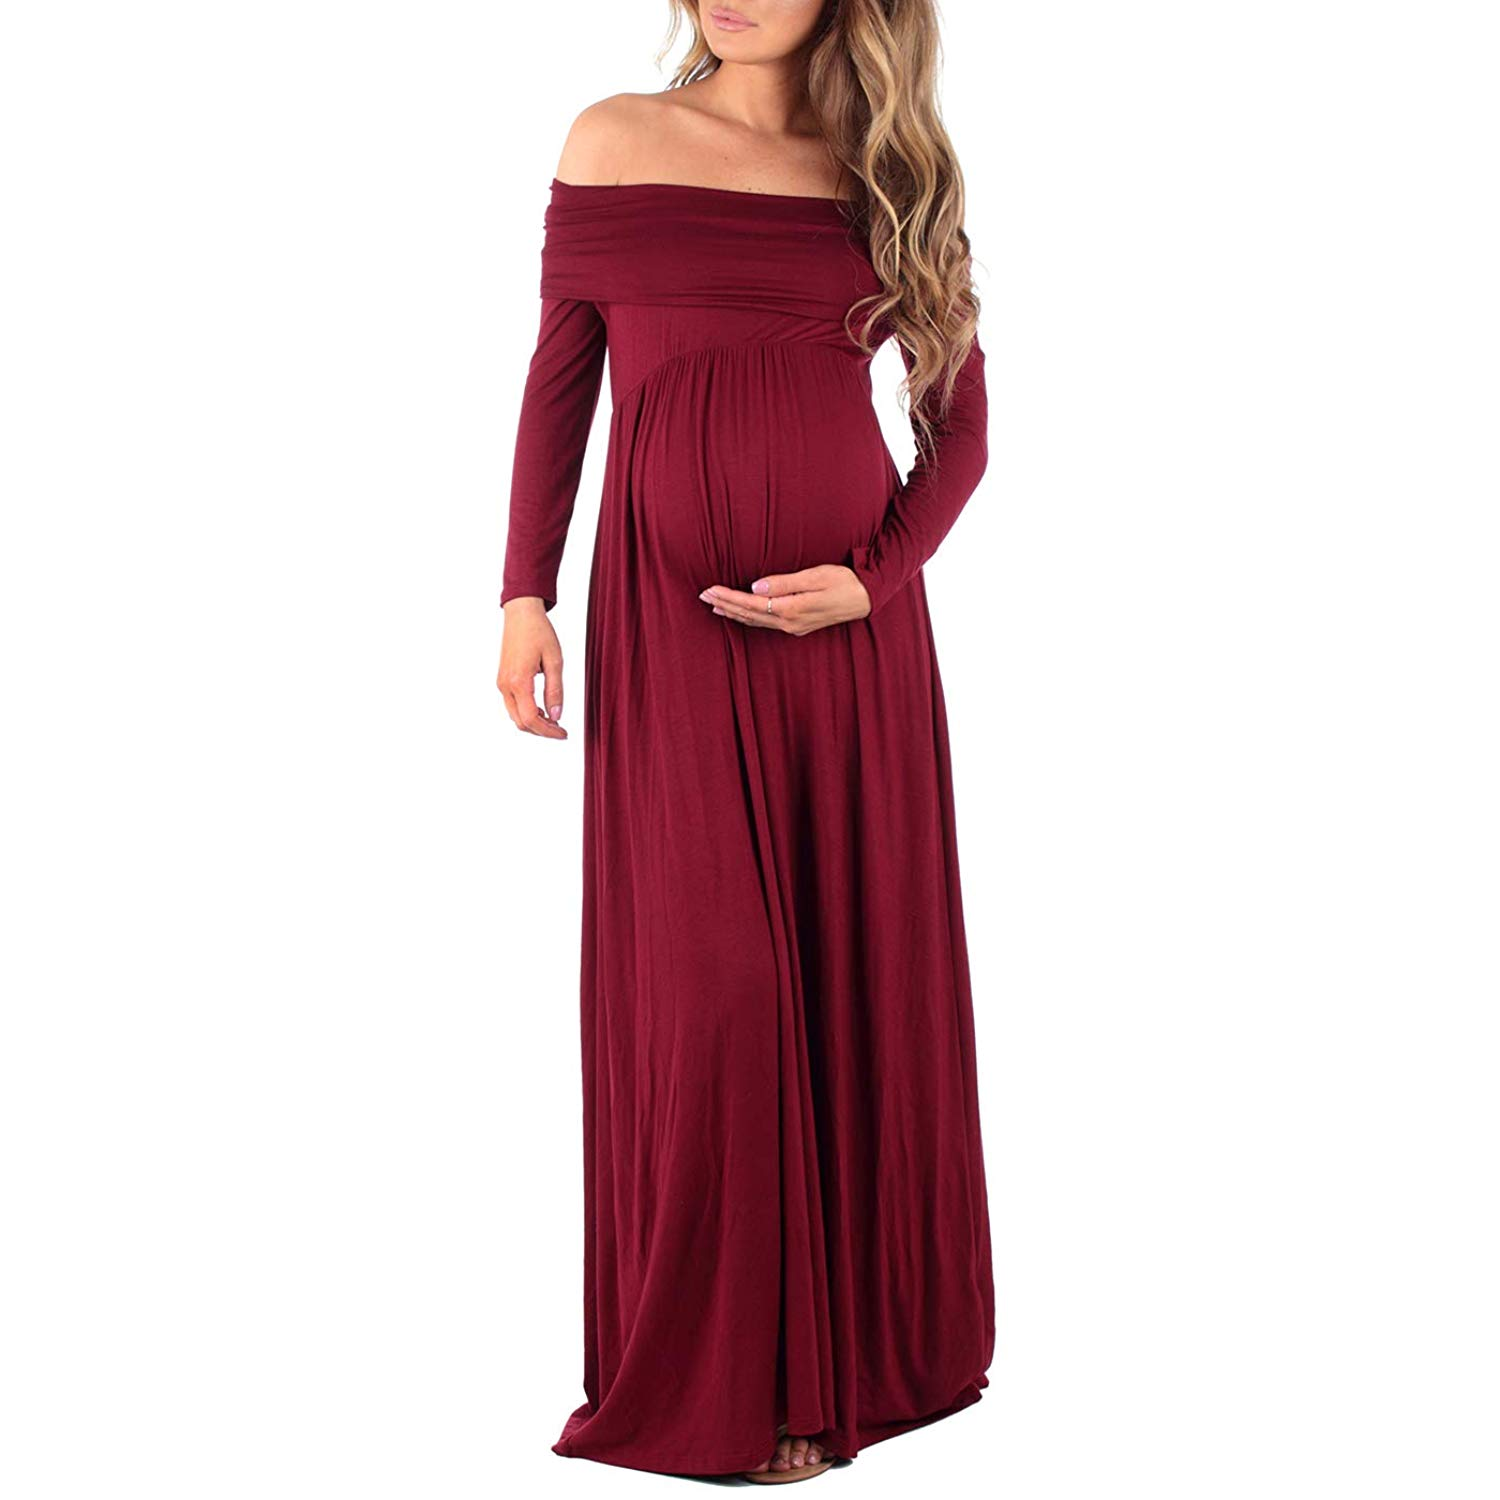 a669f24712cca Get Quotations · Women's Cowl Neck and Over The Shoulder Ruched Maternity  and Nursing Dress ...